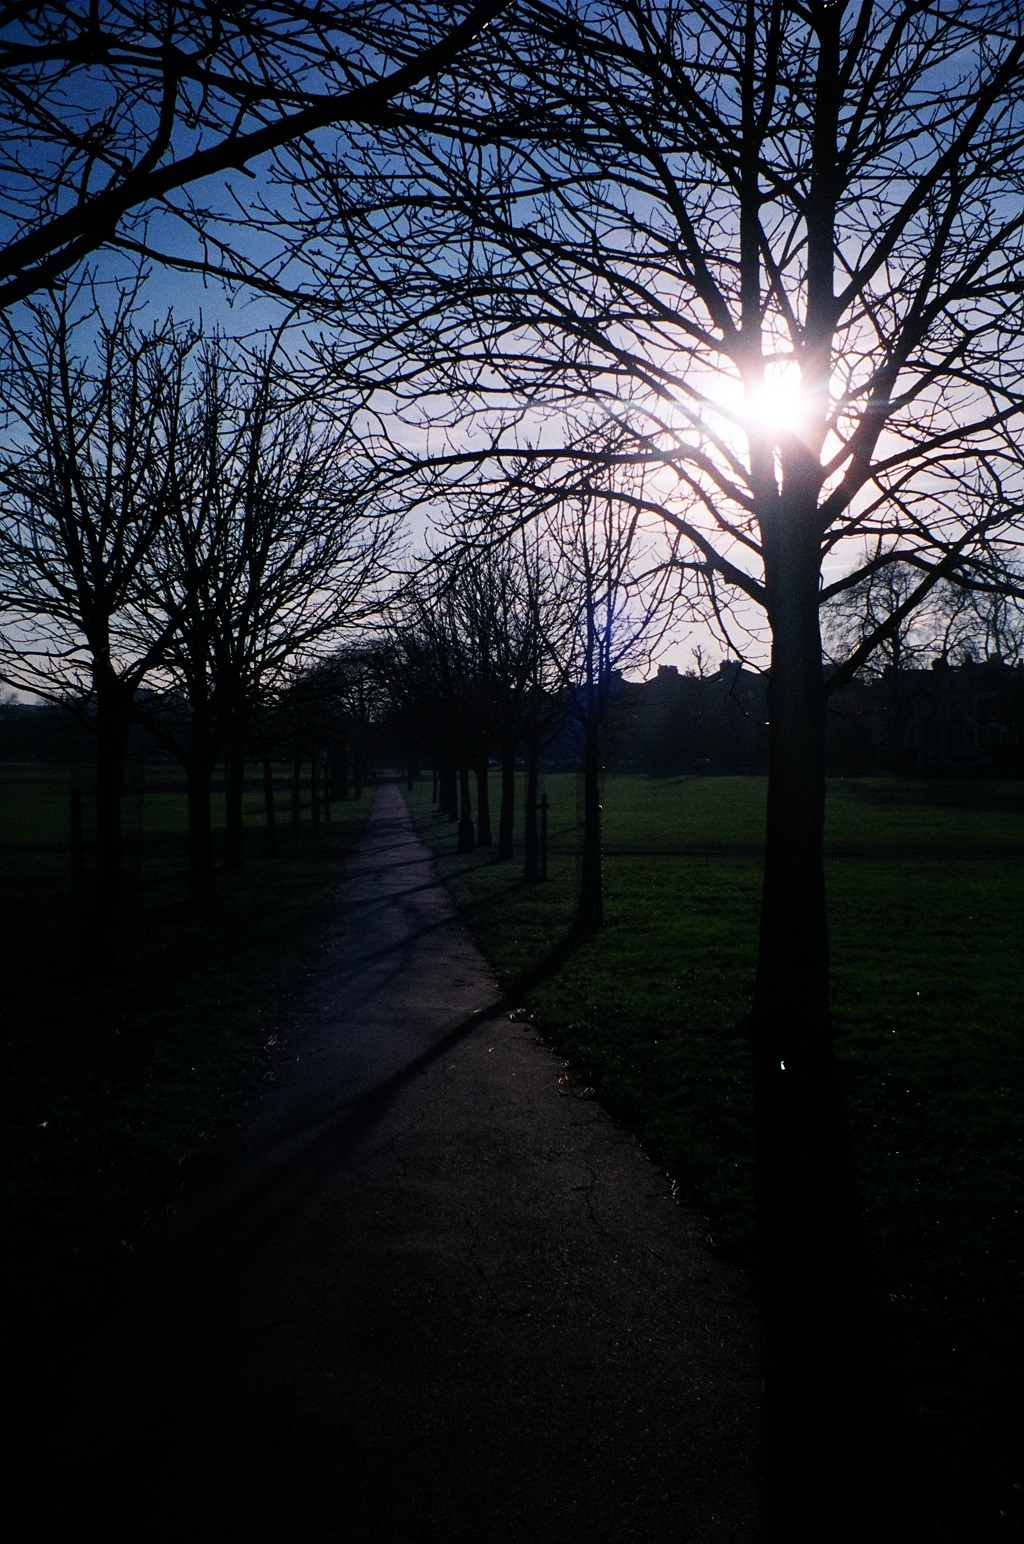 Peckham Rye park and the sun